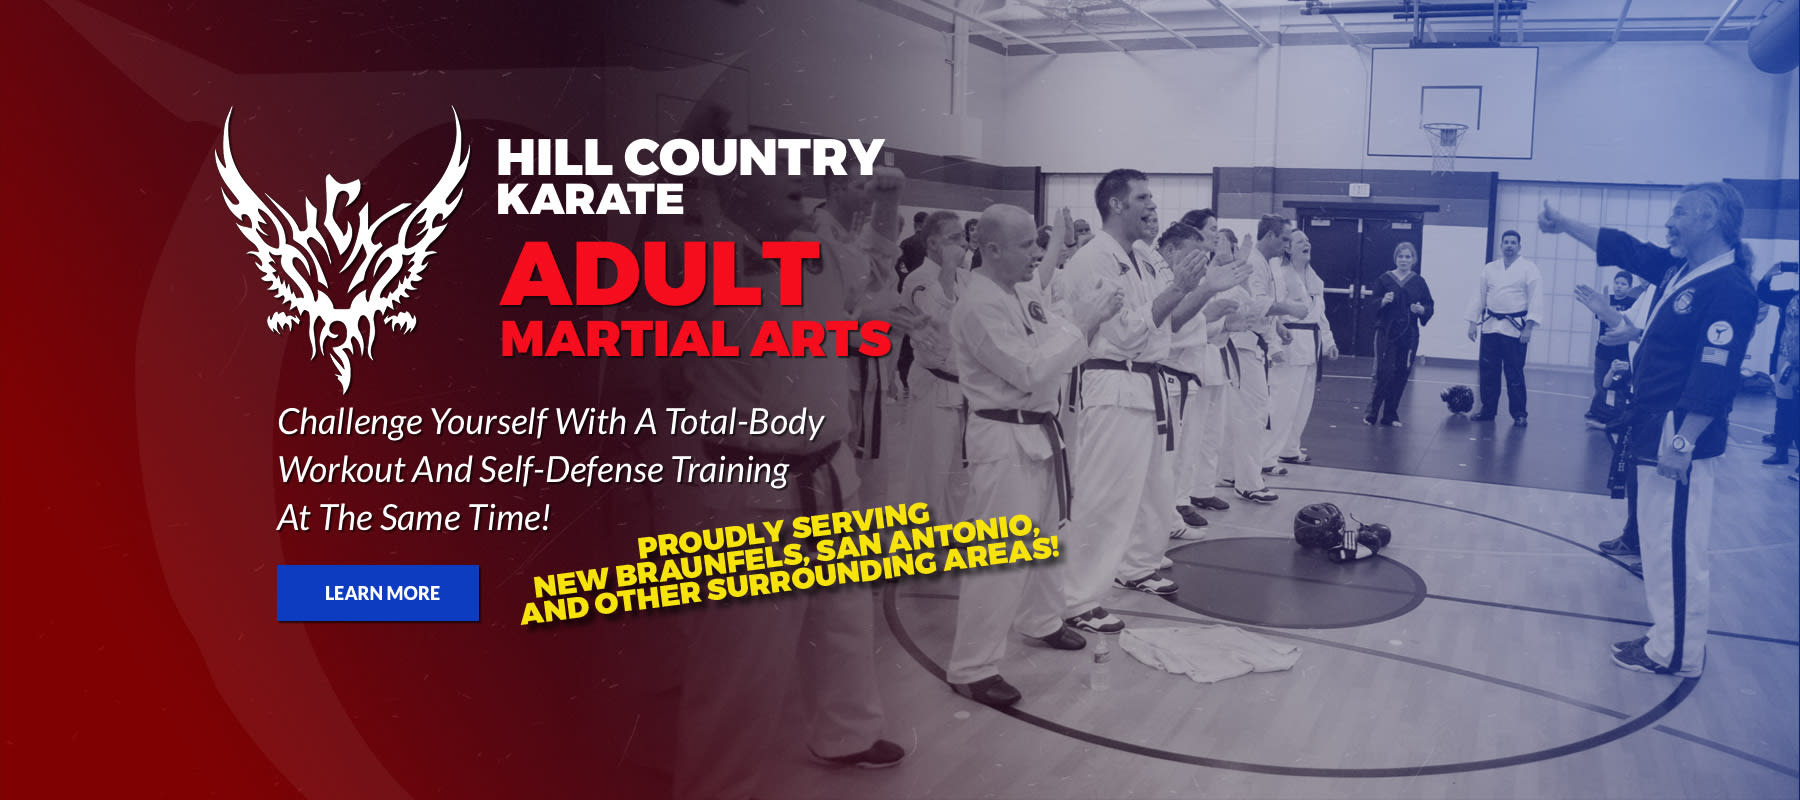 New braunfels kids martial arts hill country karate new adult martial arts in new braunfels hill country karate stopboris Image collections